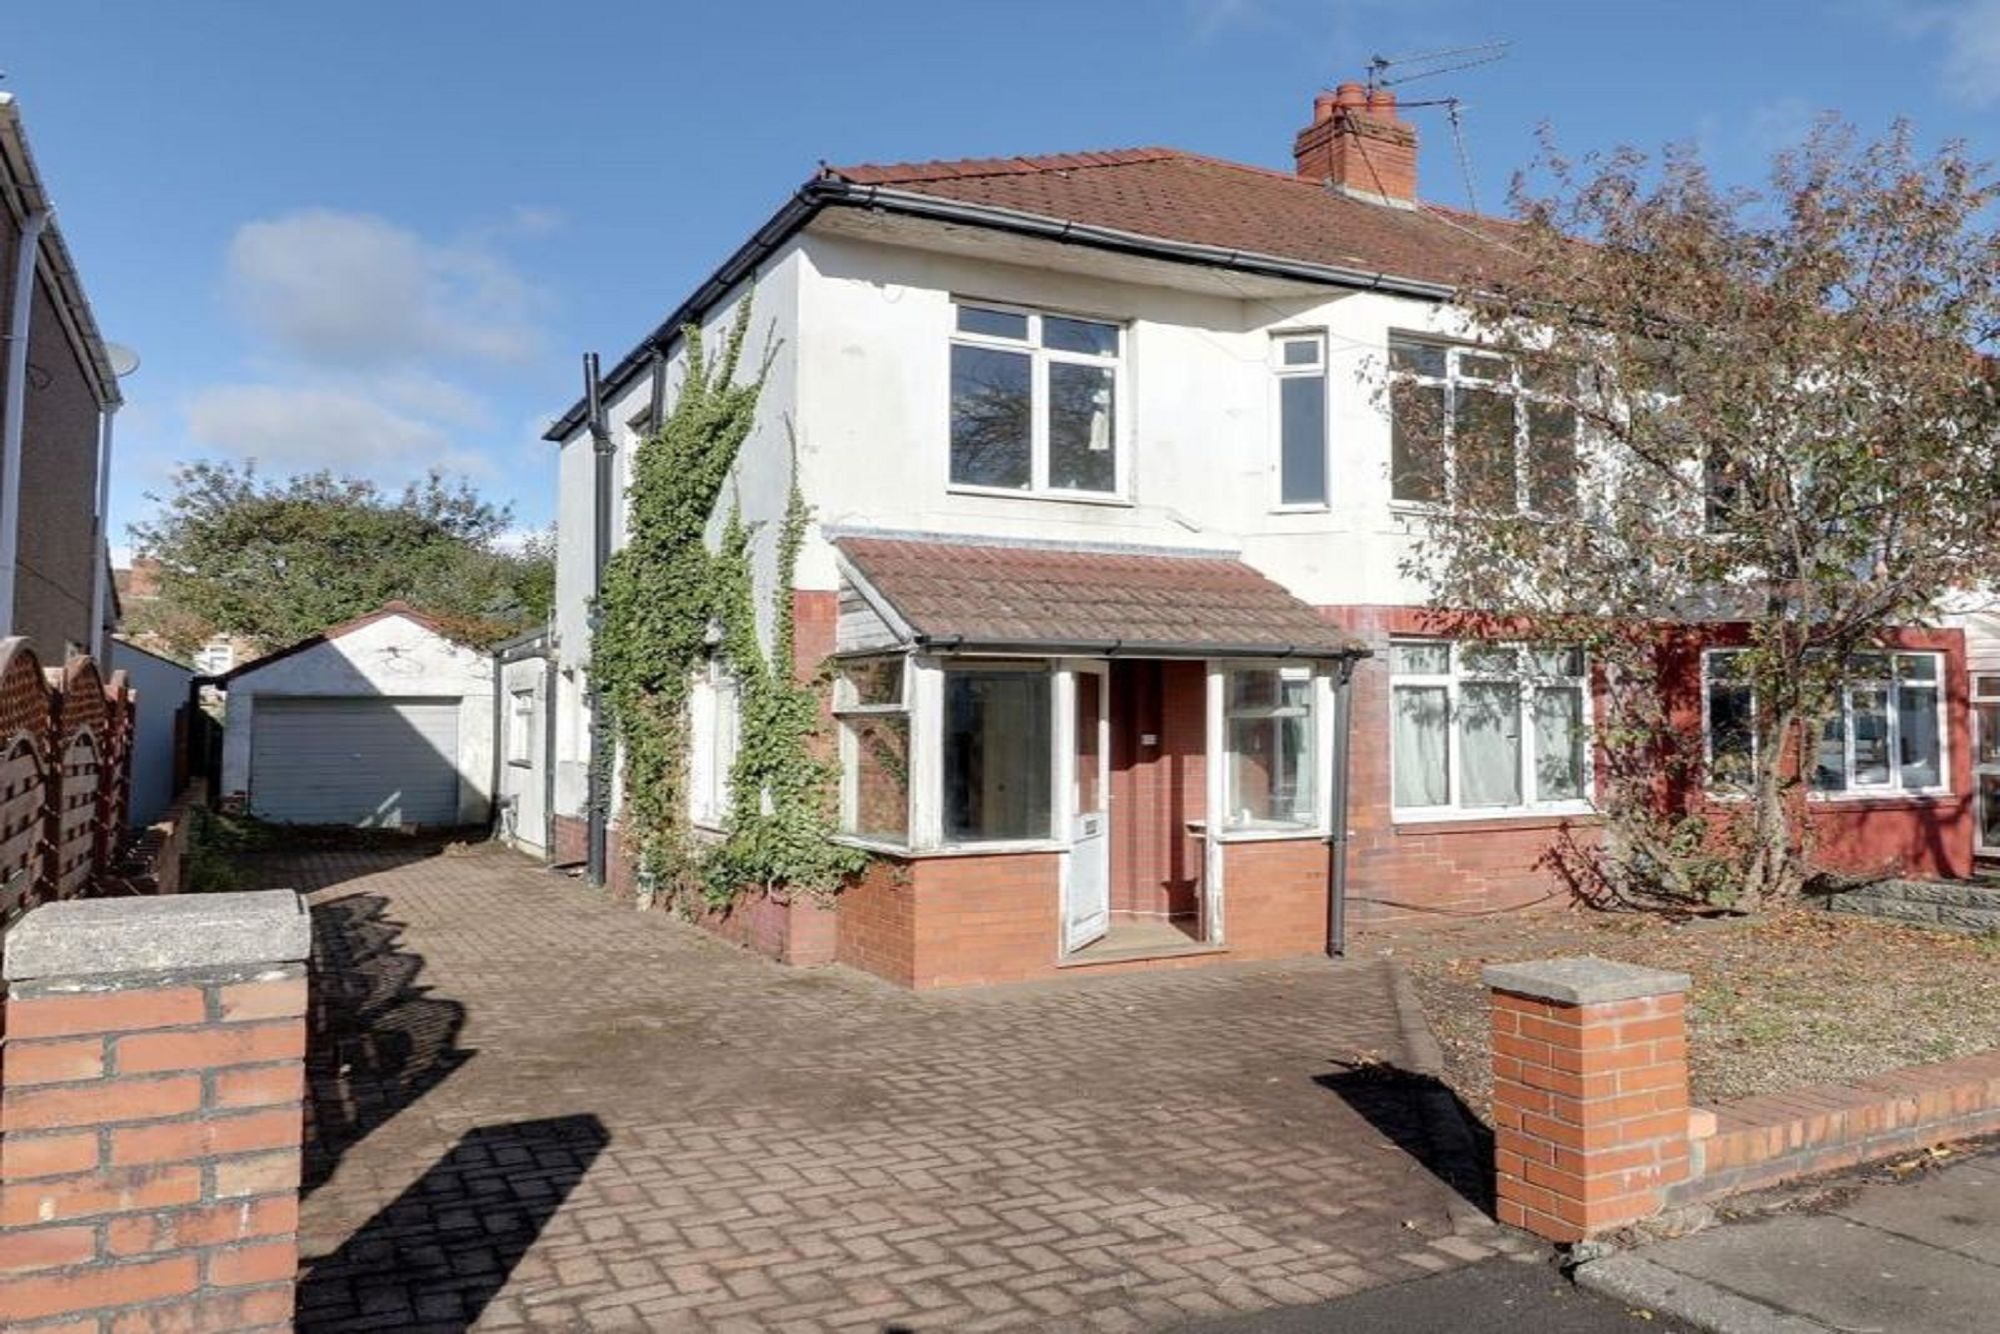 St Cadoc Road, Cardiff, CF14 4ND